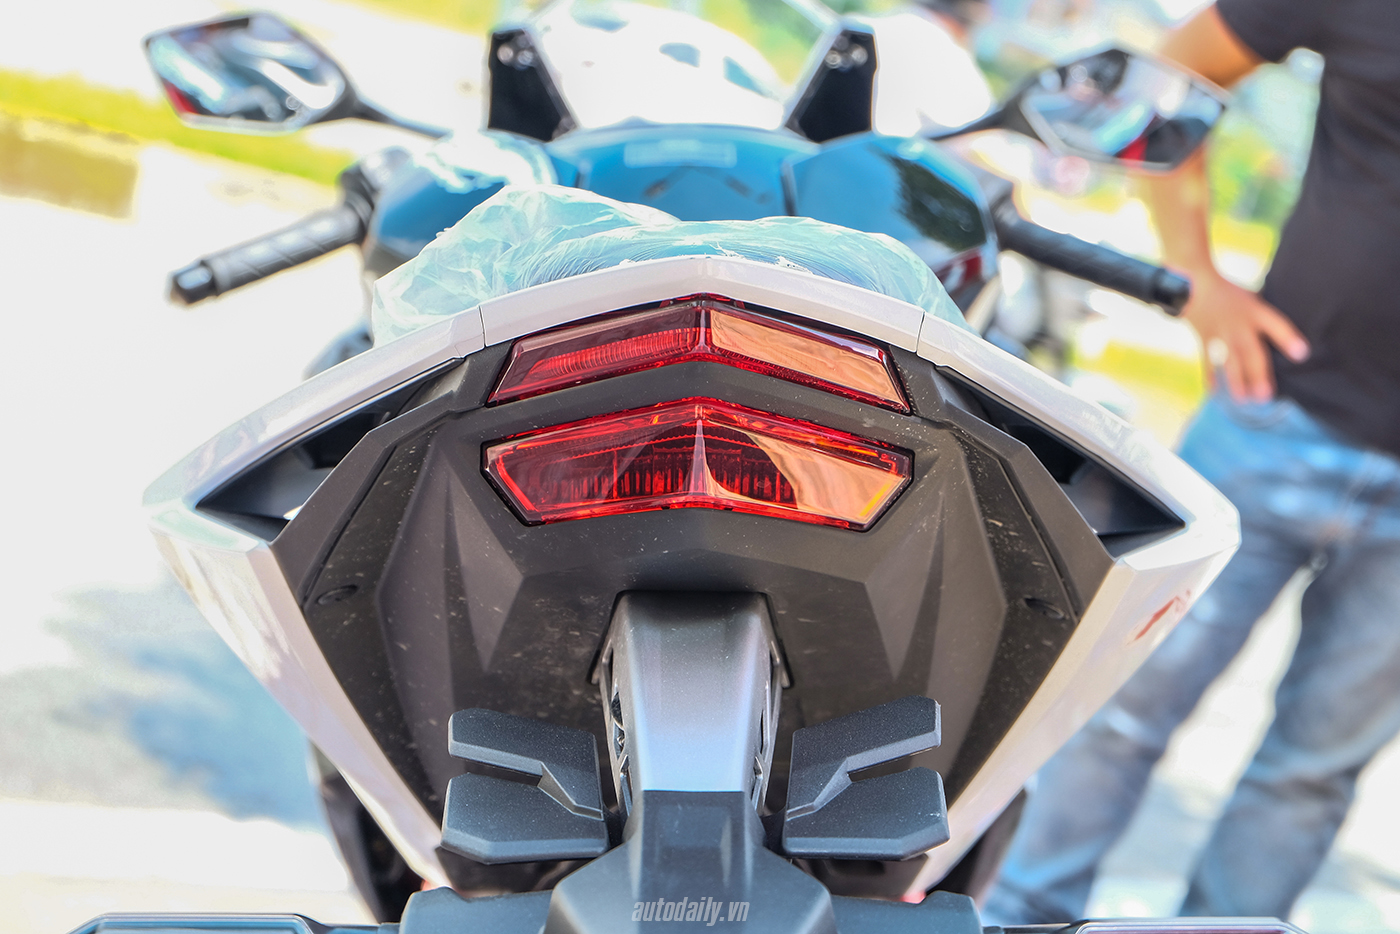 honda-cbr250rr-the-art-of-kabuki-2017-23.jpg